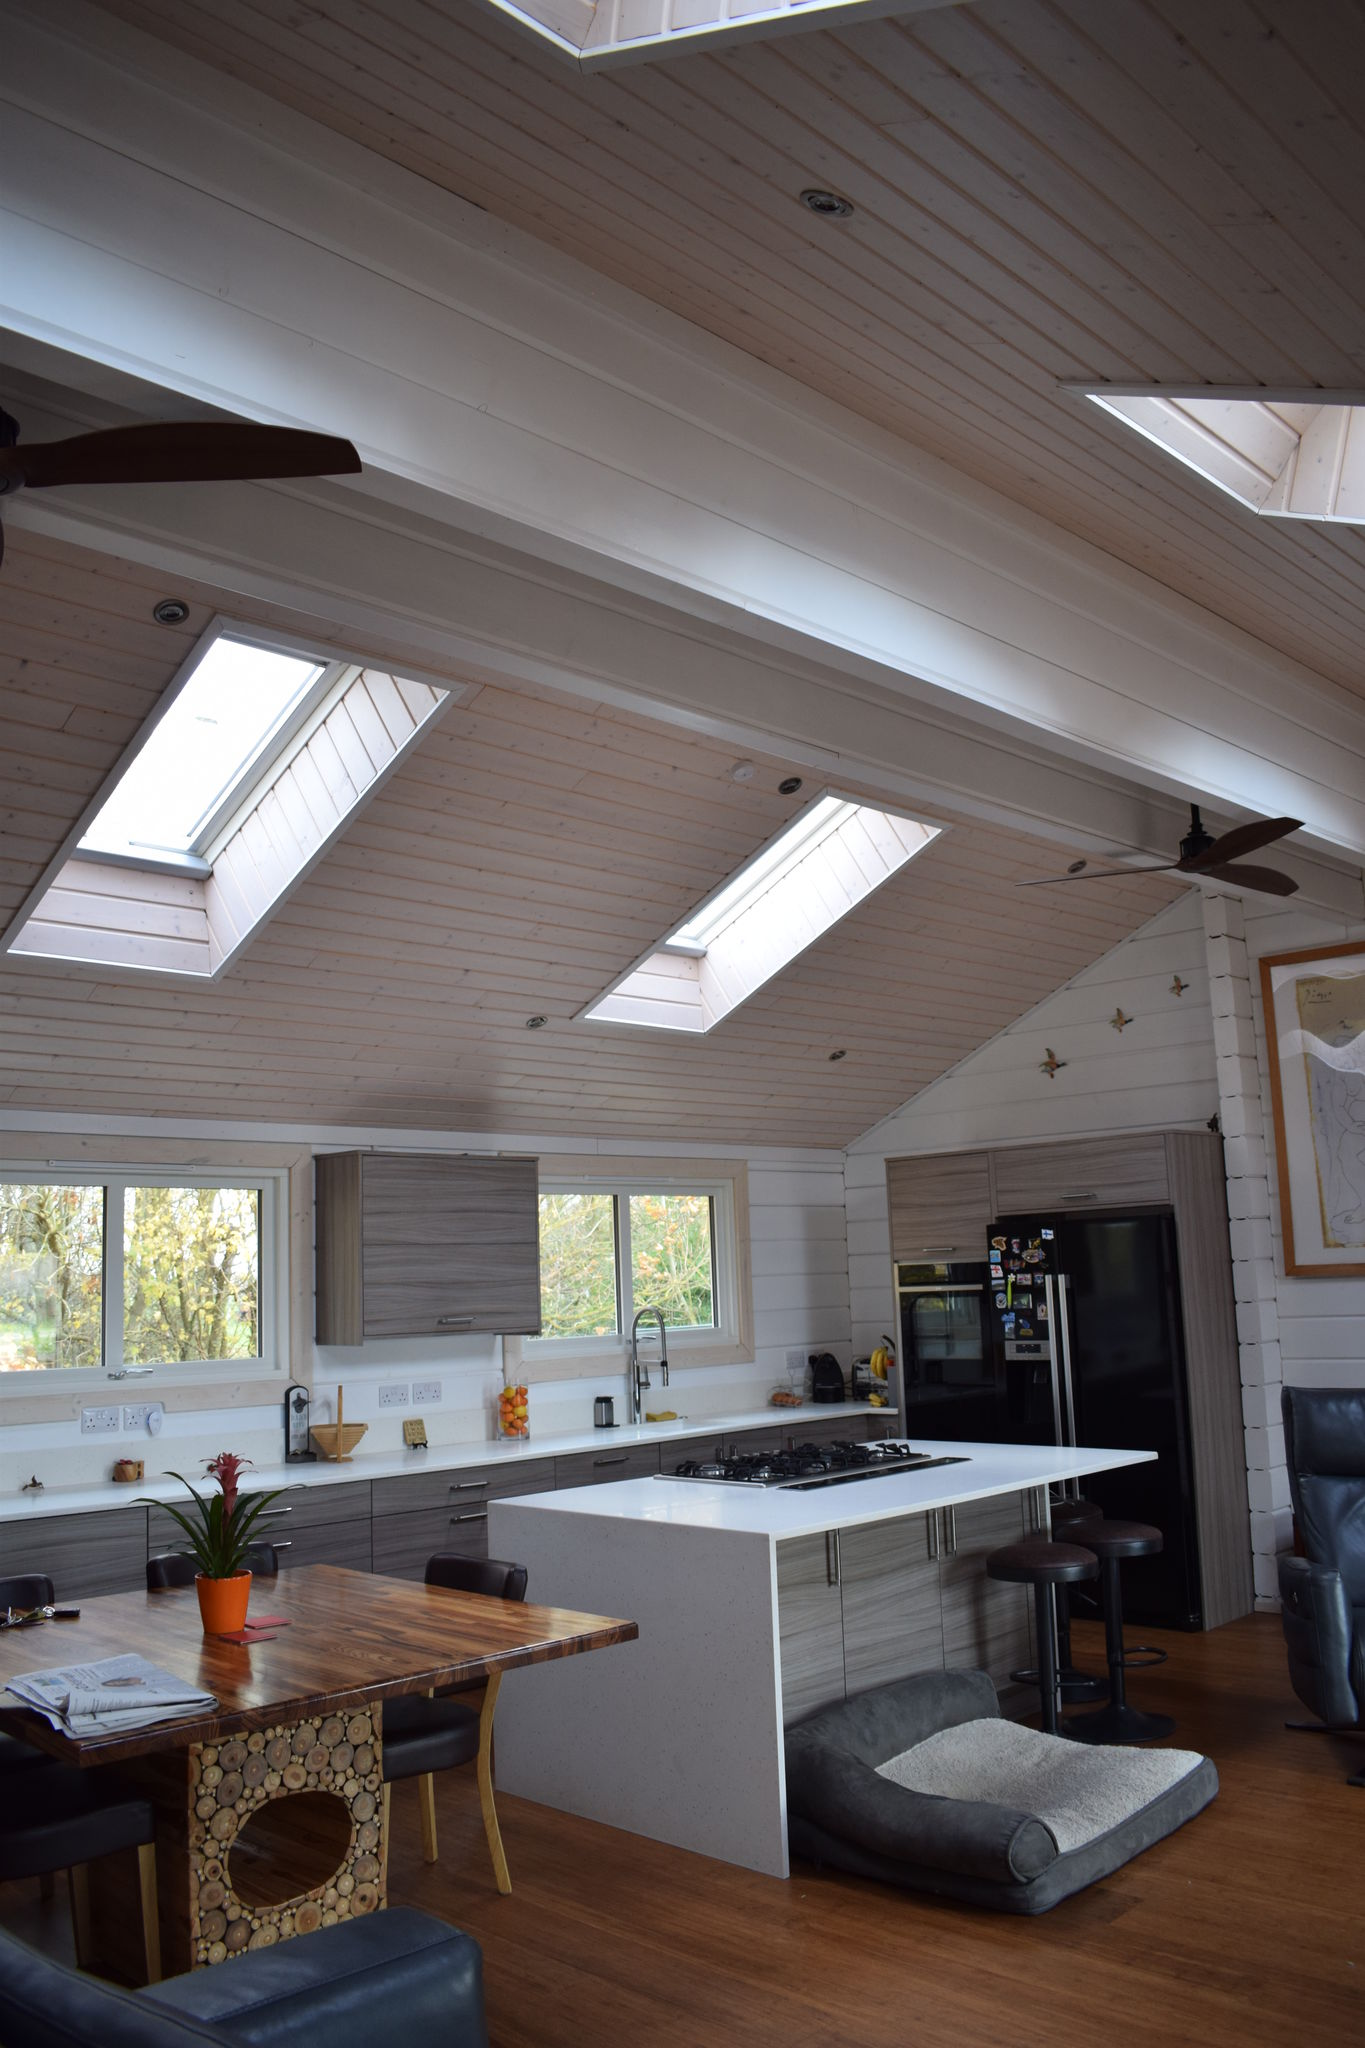 Roof Windows in Kitchen